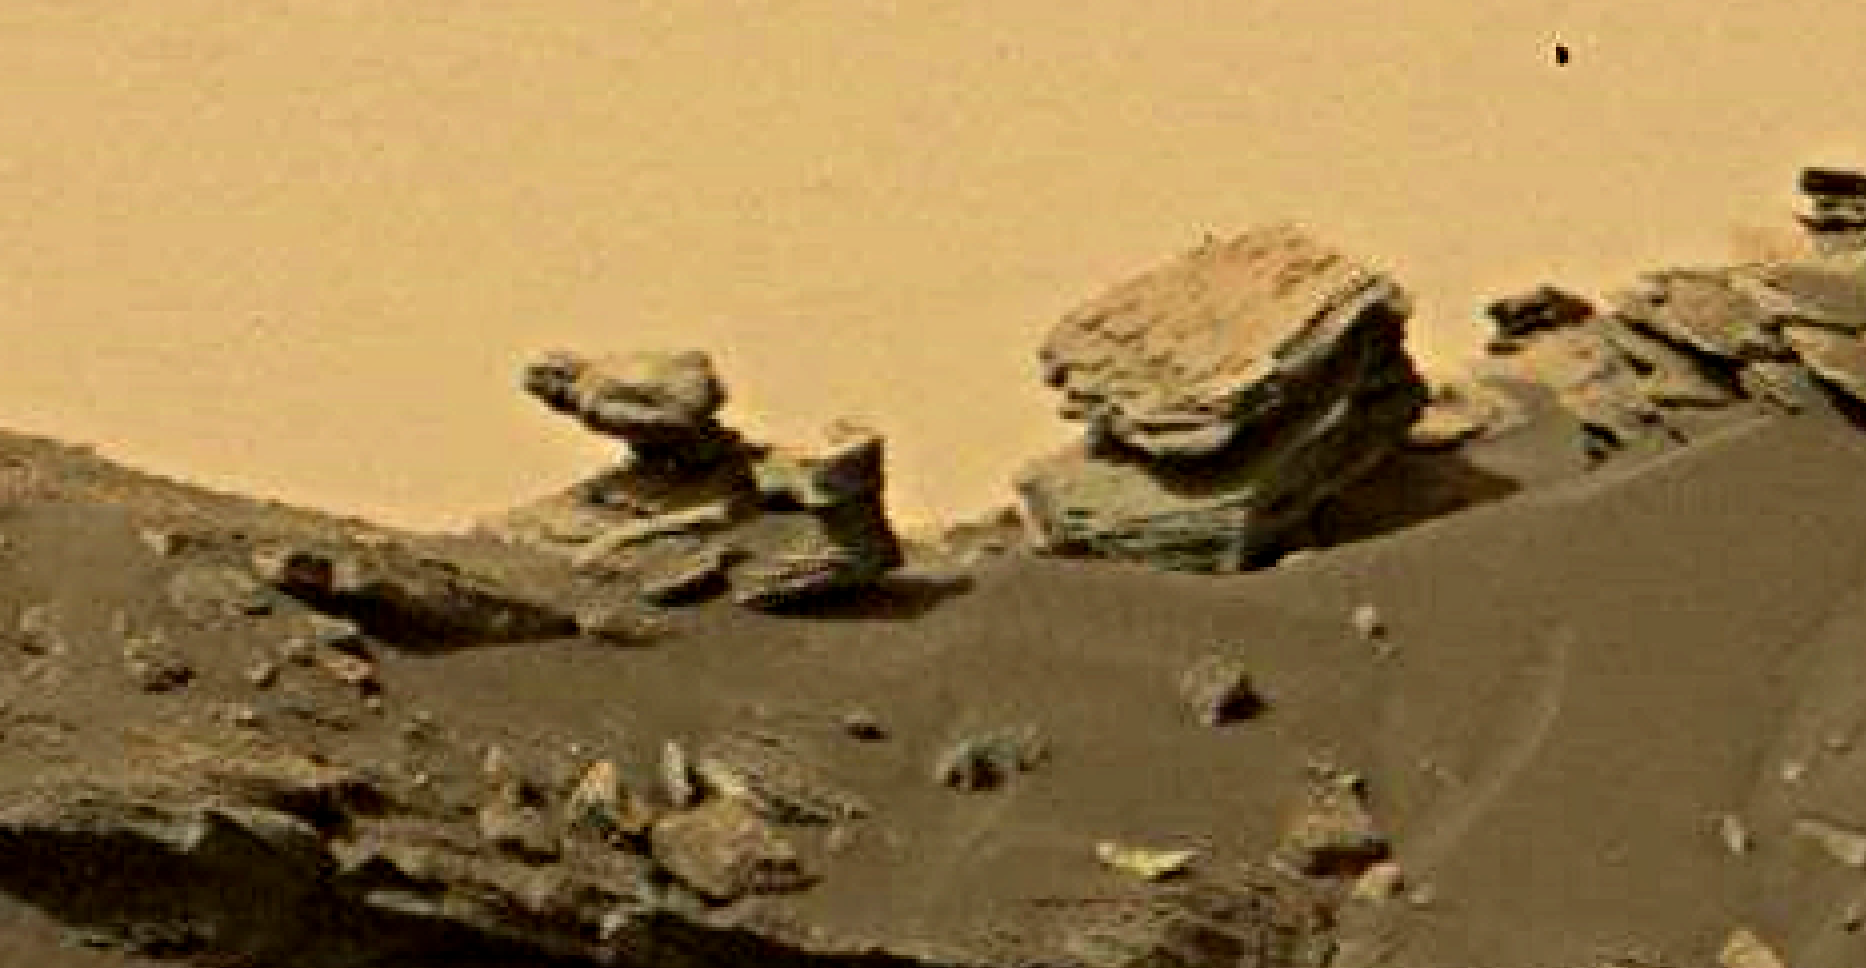 mars-sol-1450-anomaly-artifacts-6-was-life-on-mars